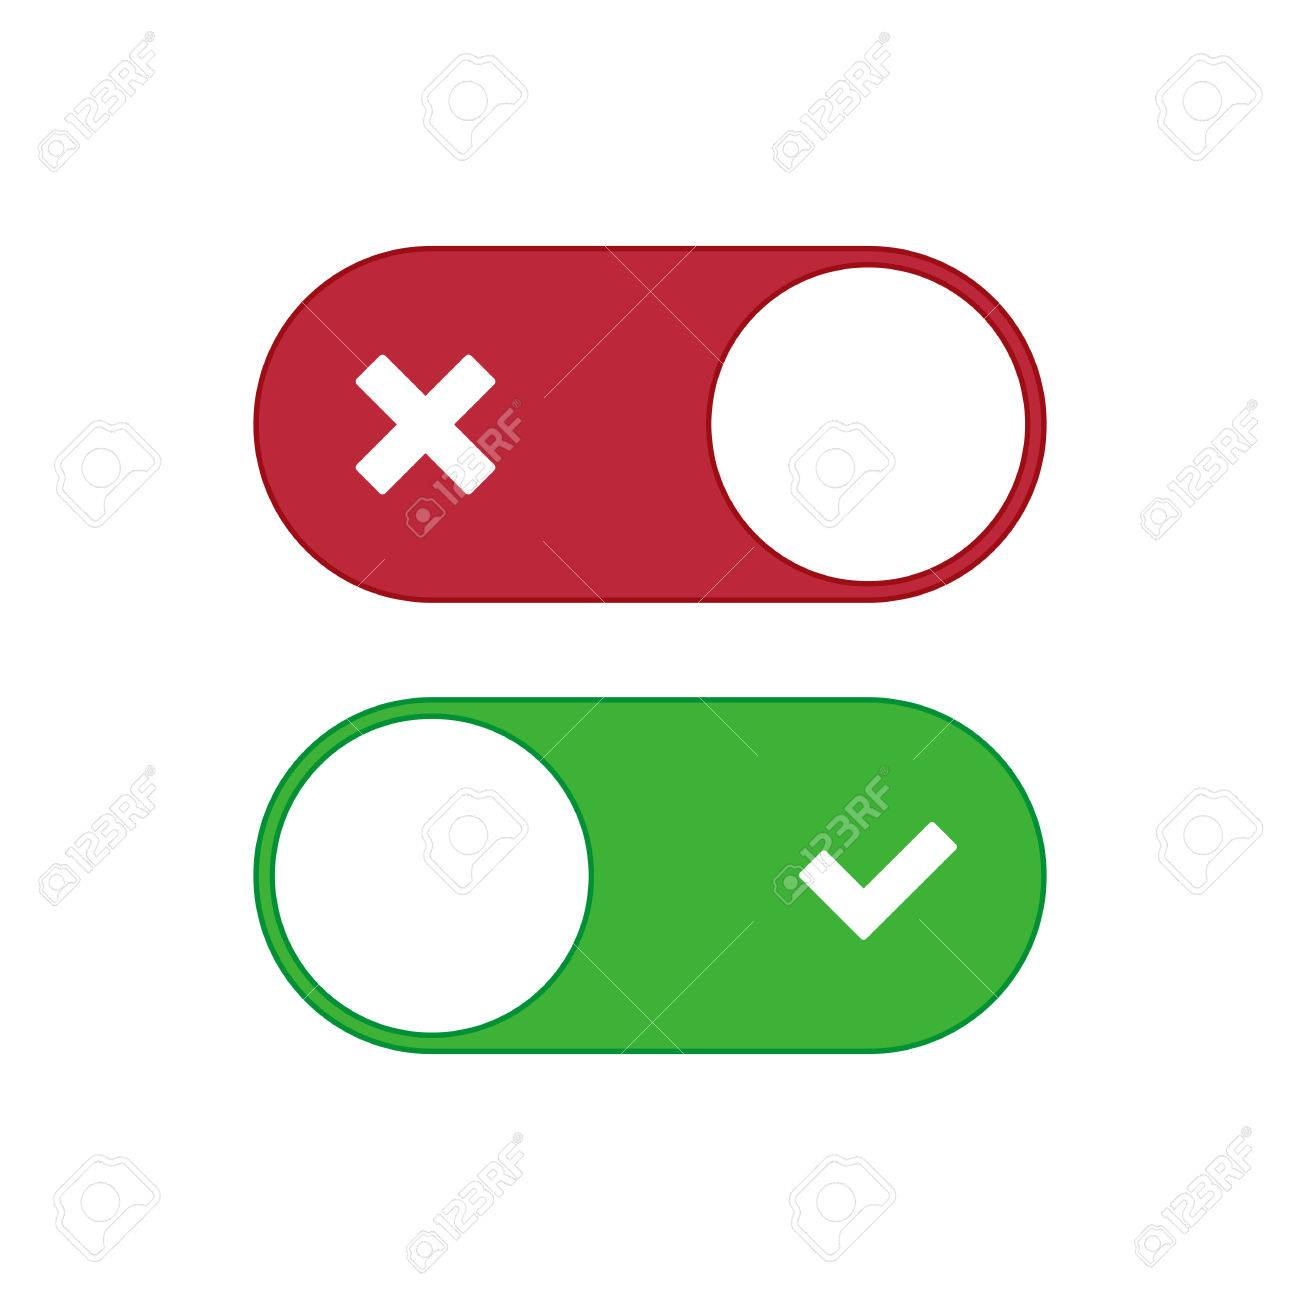 Universal Toggle Switch Vector Icon, On And Off Position Simple ...